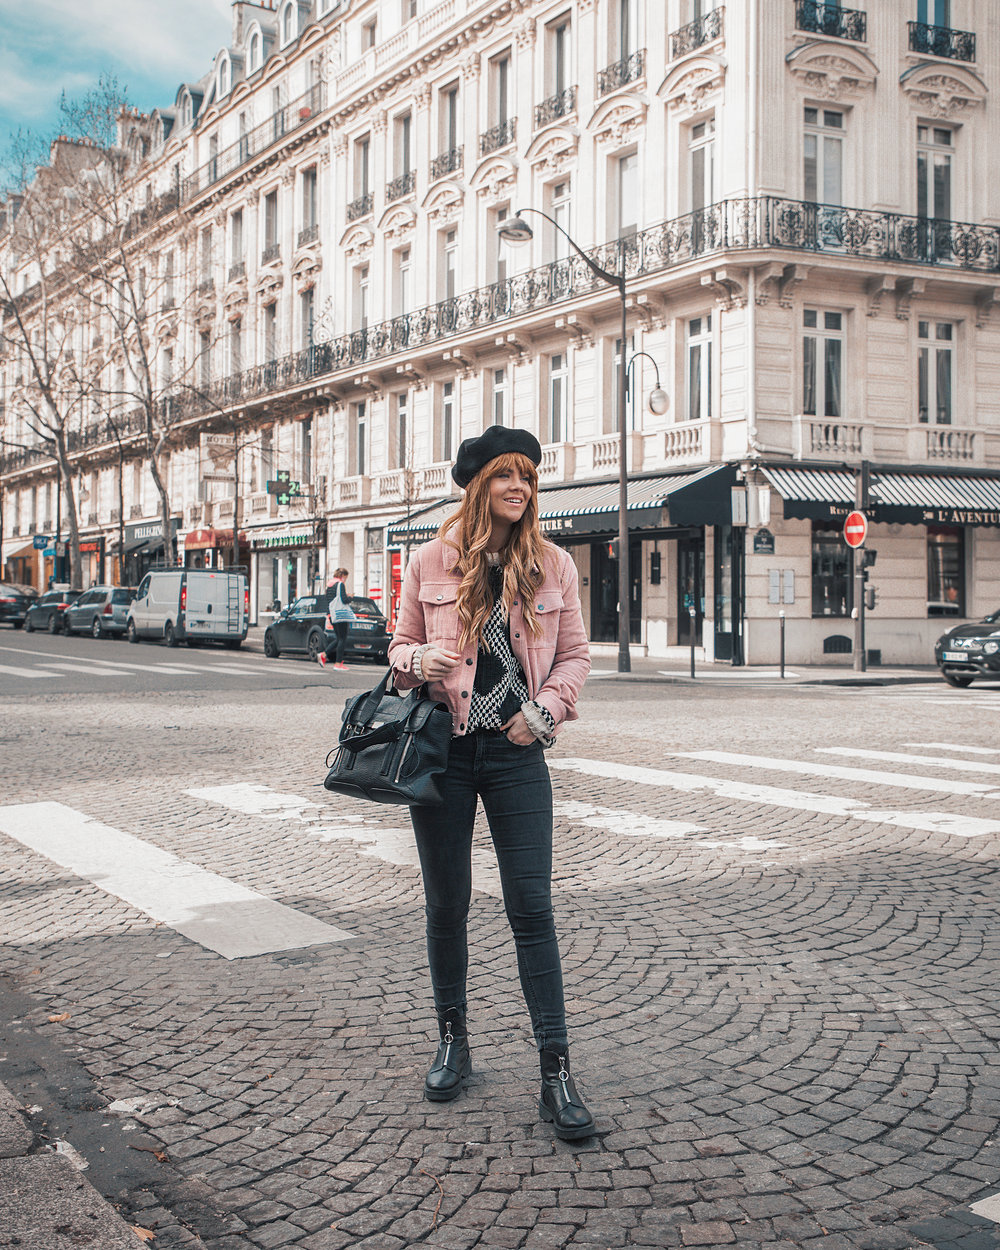 paris-winter-street-style-pink-jacket_6.jpg